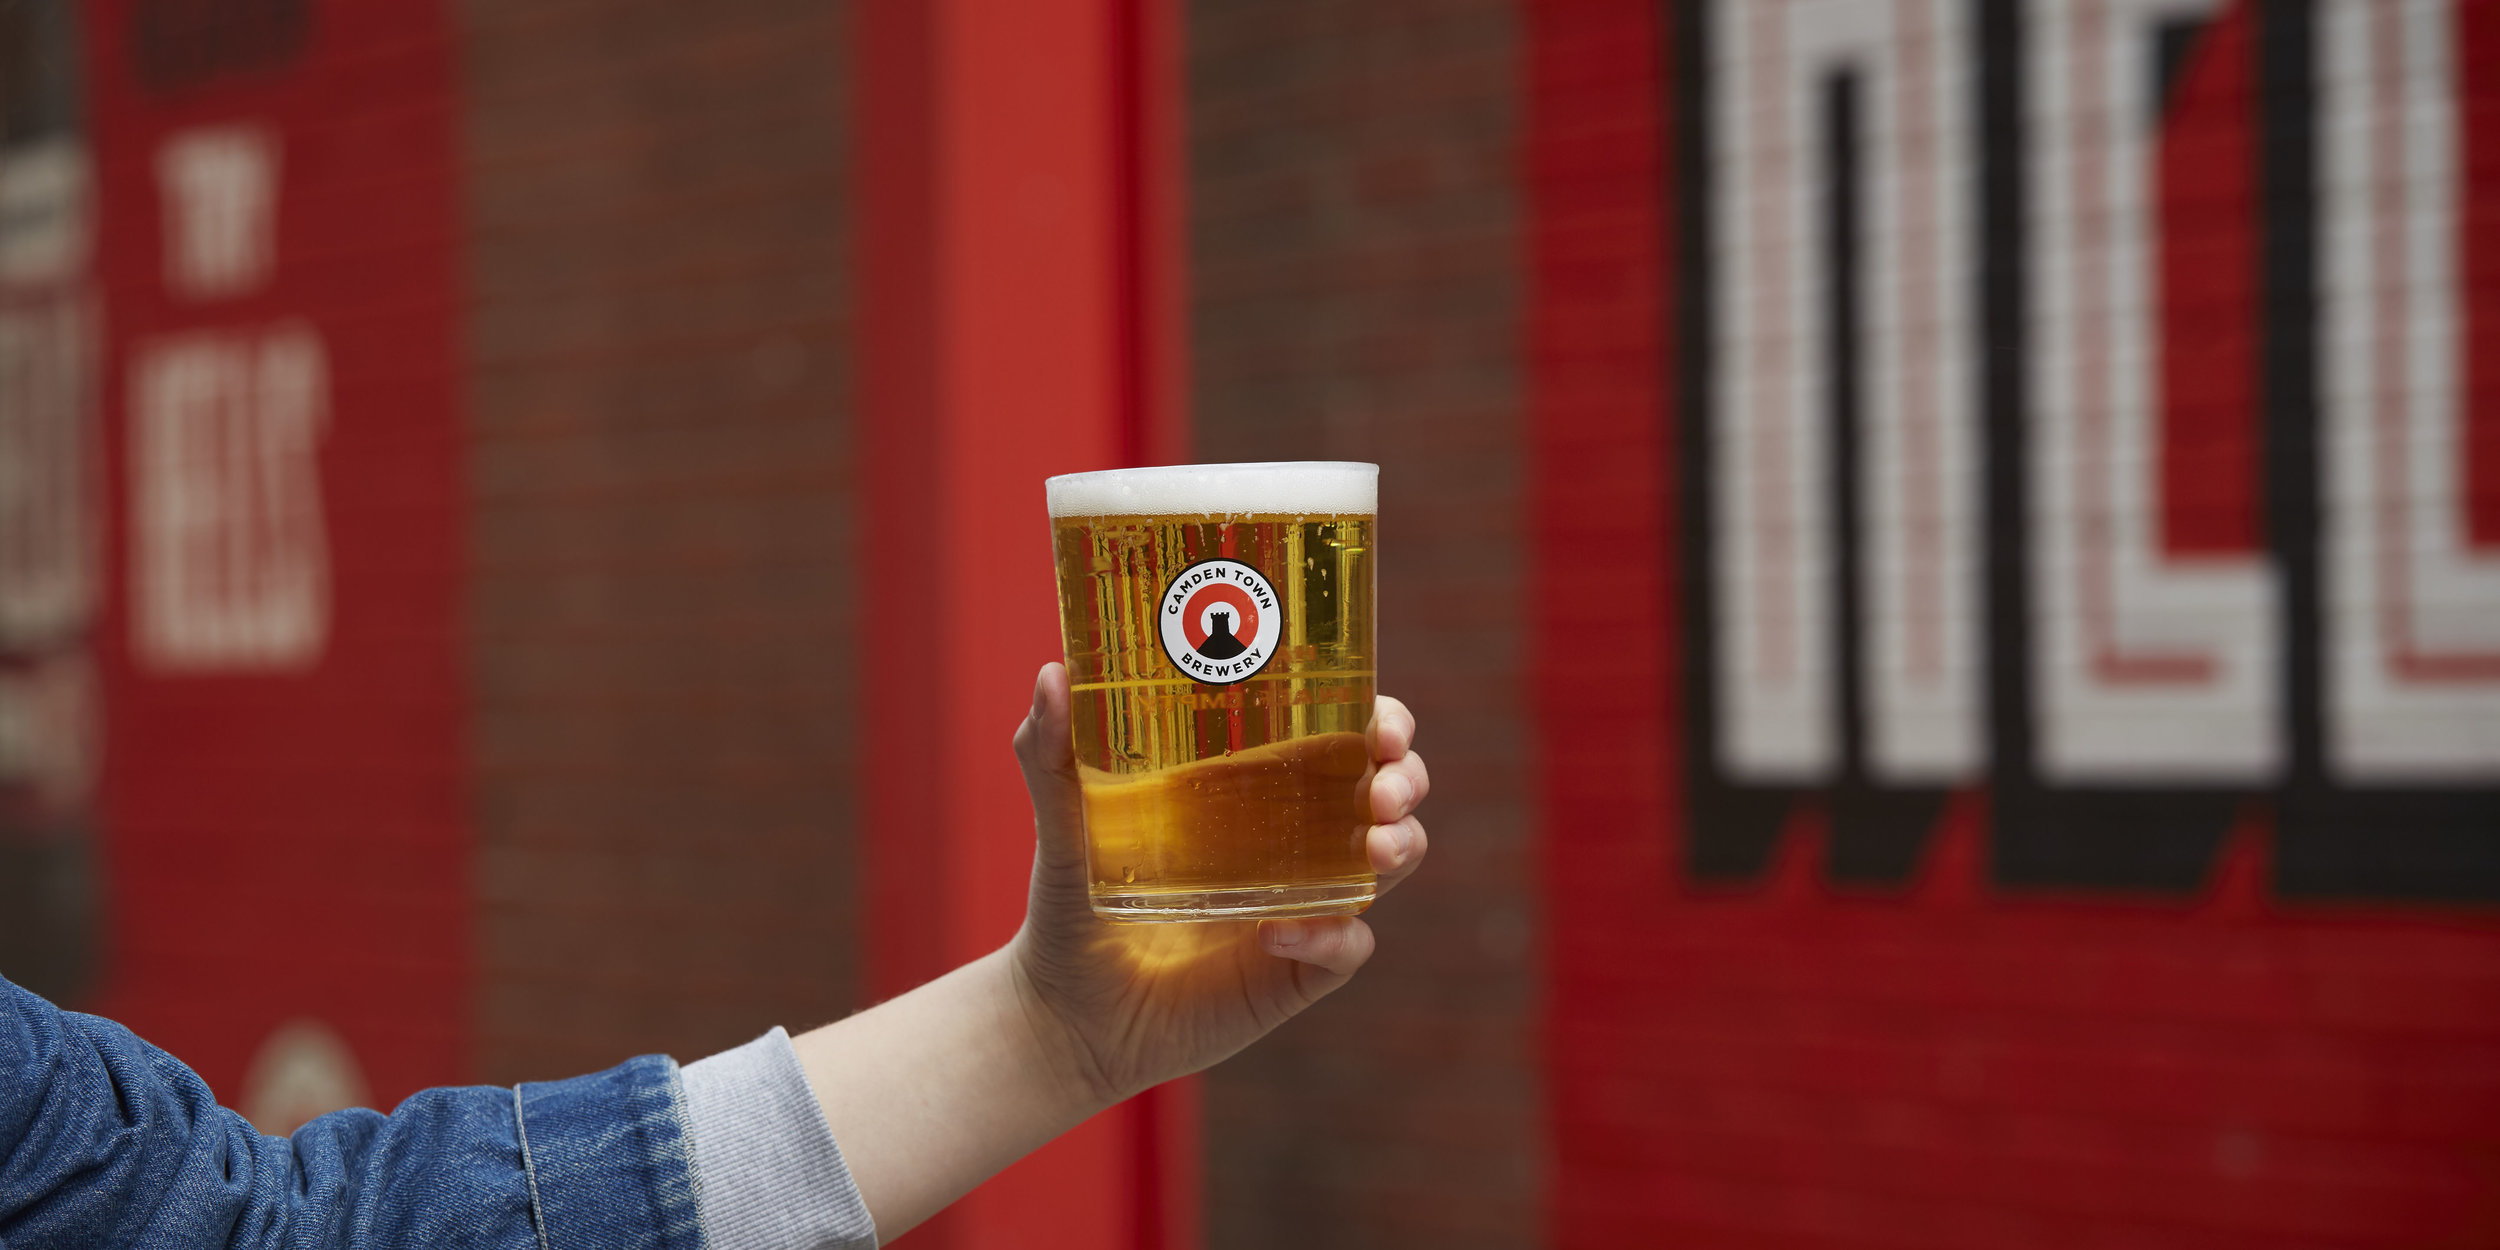 Jack Glass - Camden Town Brewery // 2018A dependable drinking glass for everyday, anytime use. A versatile vessel for any Camden Town Brewery beer you'd serve in a pint measure.'Jack' brings a new shape to the traditional straight-sided pint glass with lower, wider proportions.